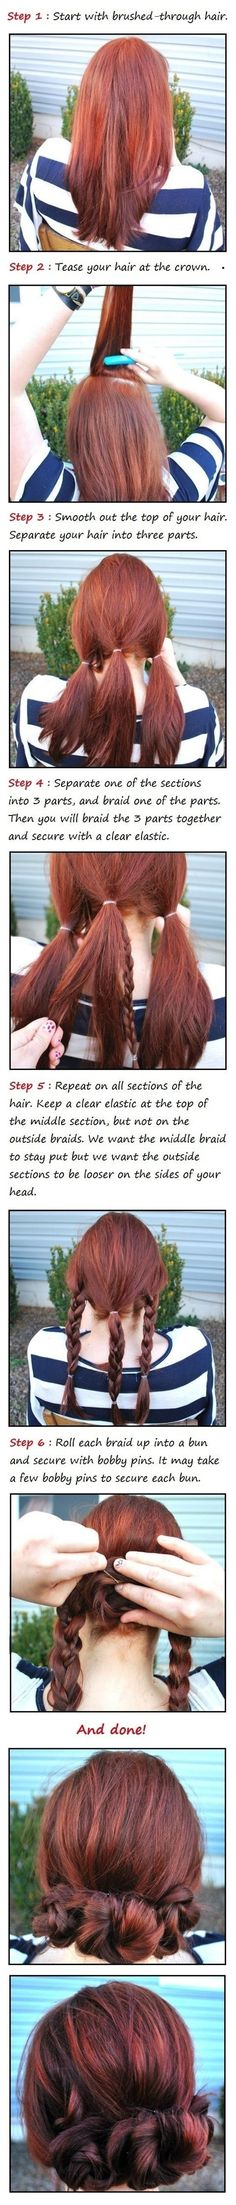 I think I could even do this, and my go-to styles are down and ponytail.